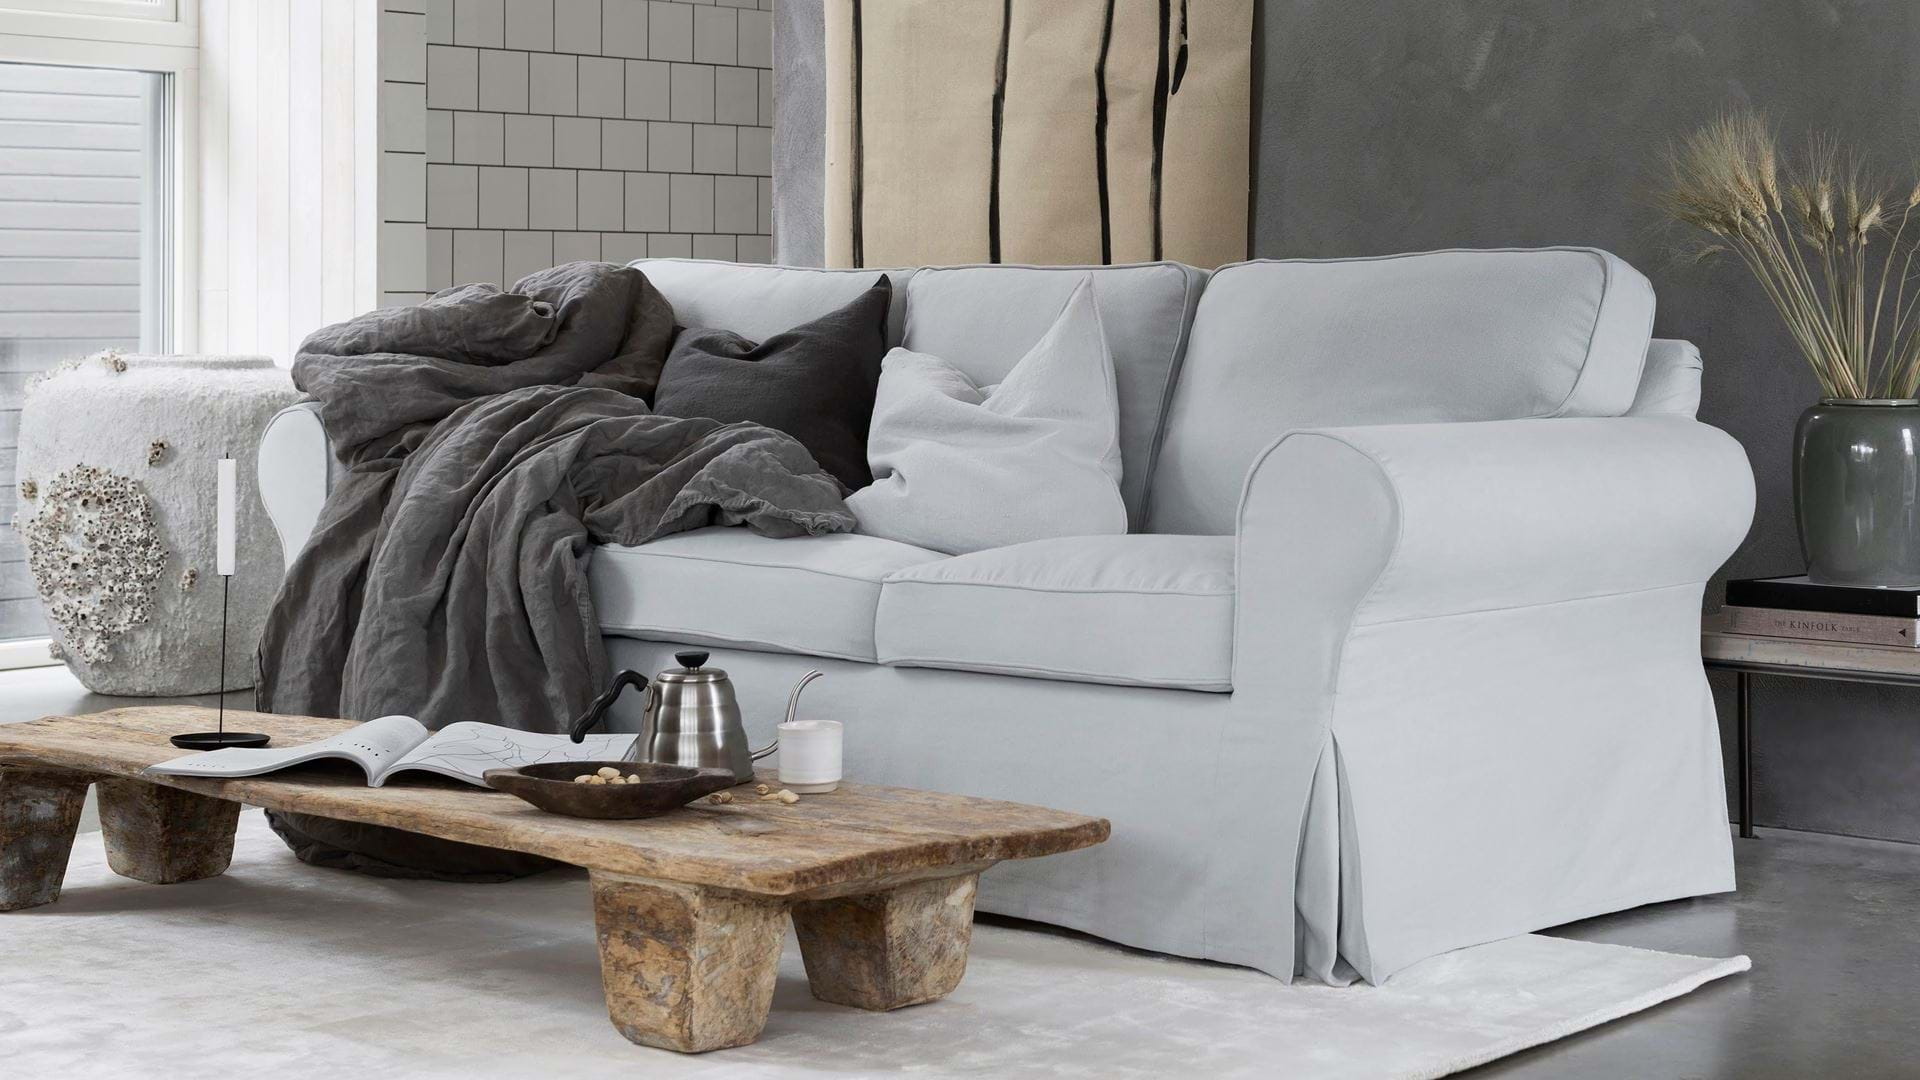 Ikea Rp 3 Seater Sofa Cover With